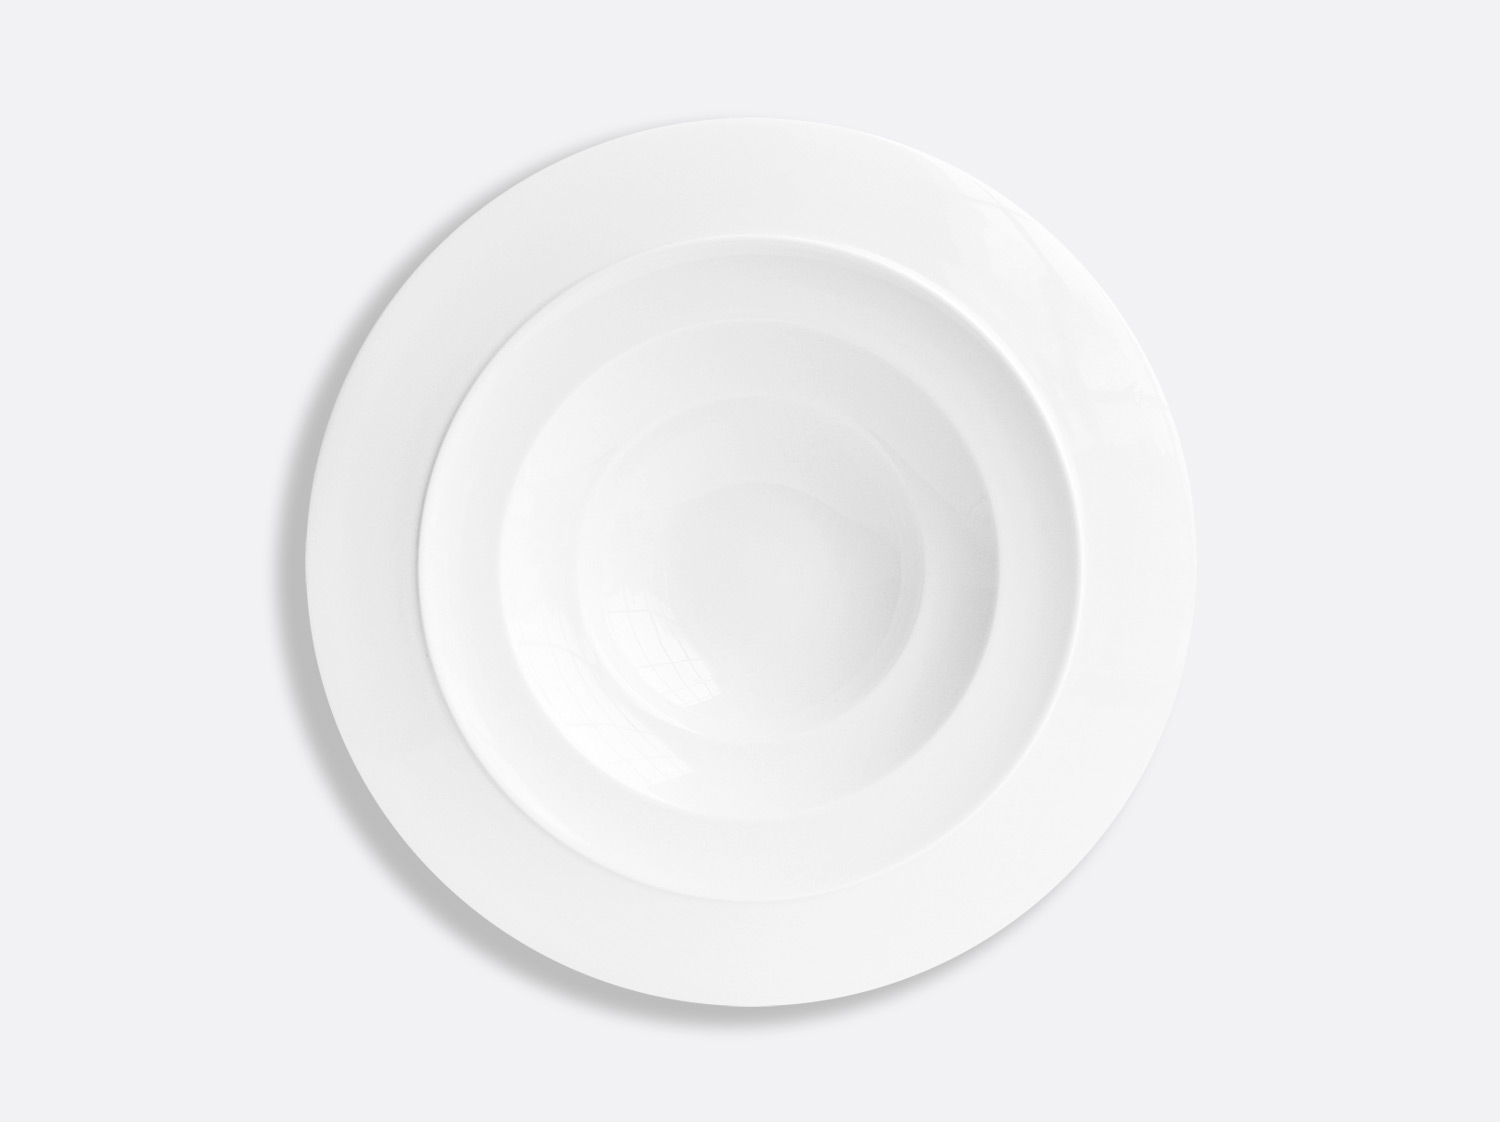 Assiette creuse à aile 27,5 cm en porcelaine de la collection Conti Bernardaud